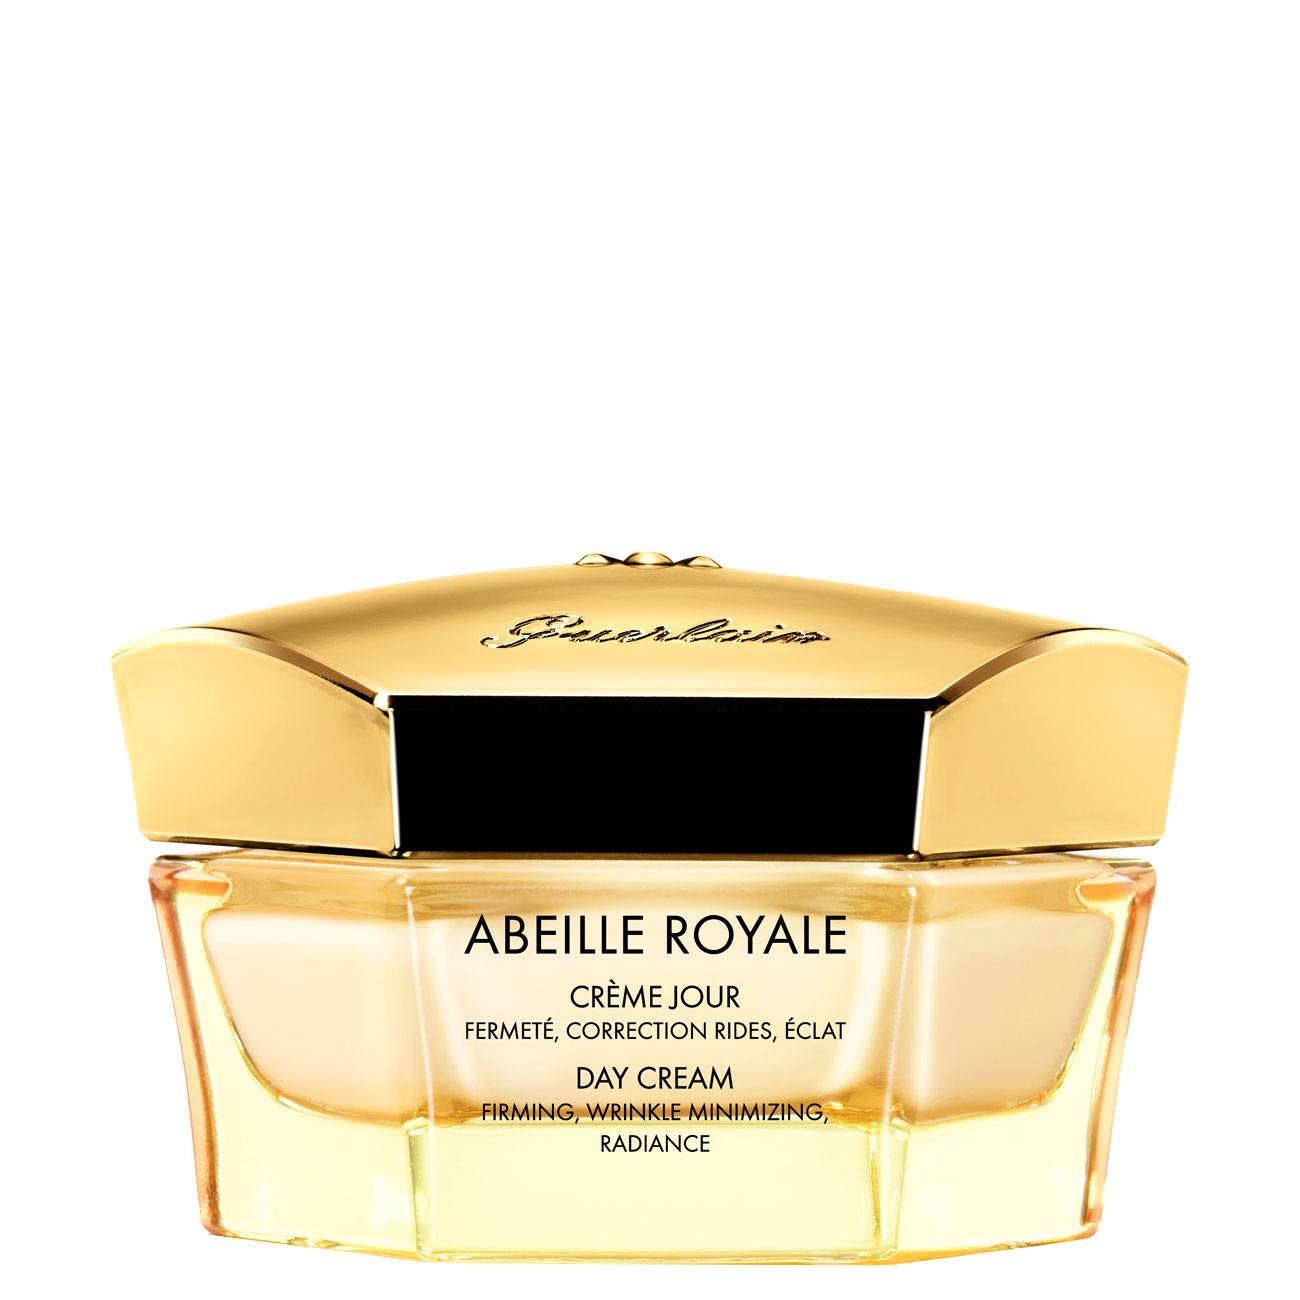 ABEILLE ROYALE DAY CREAM 50 ML